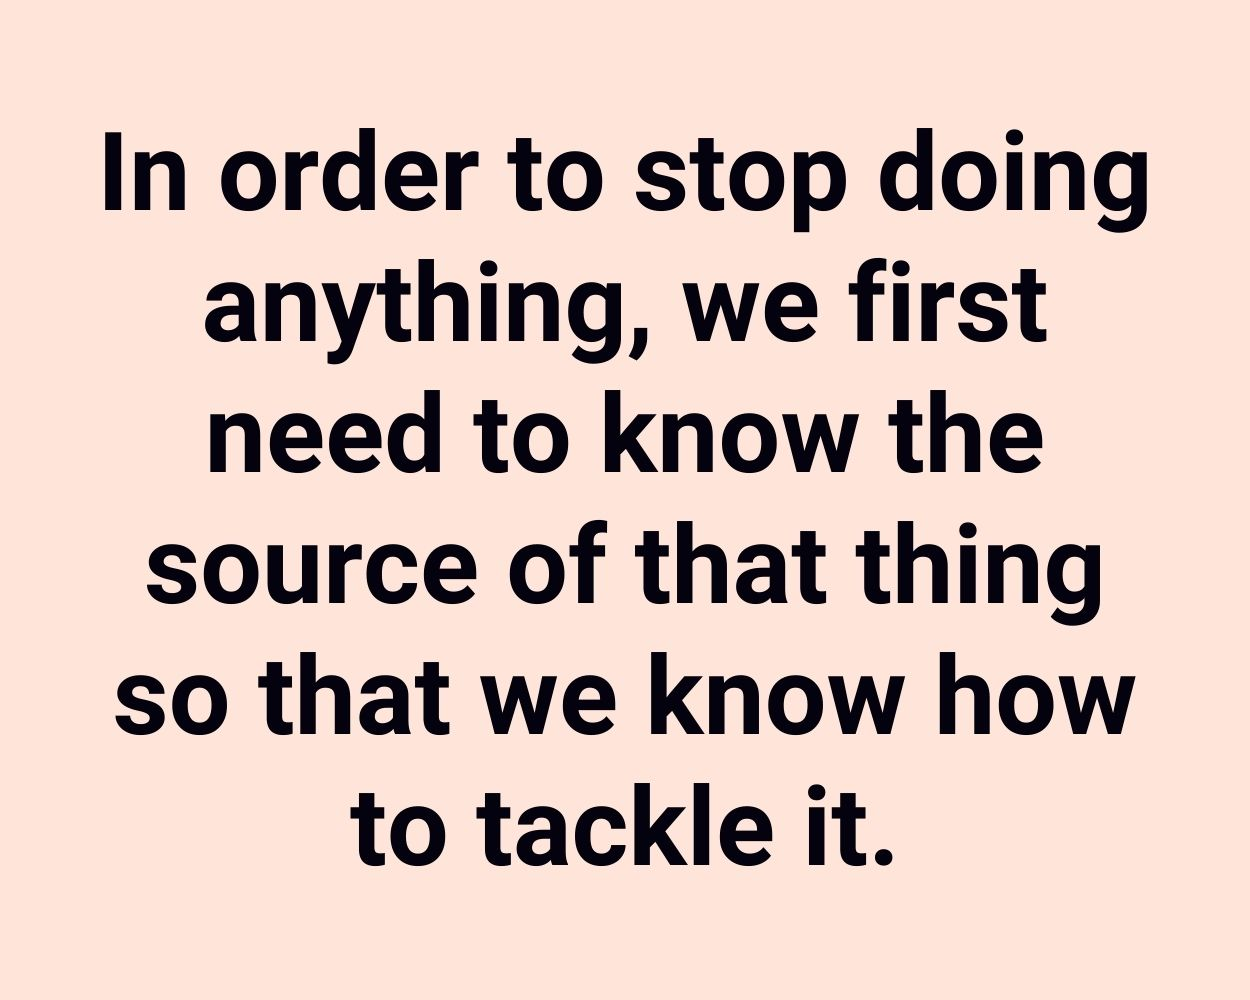 In order to stop doing anything, we first need to know the source of that thing so that we know how to tackle it.